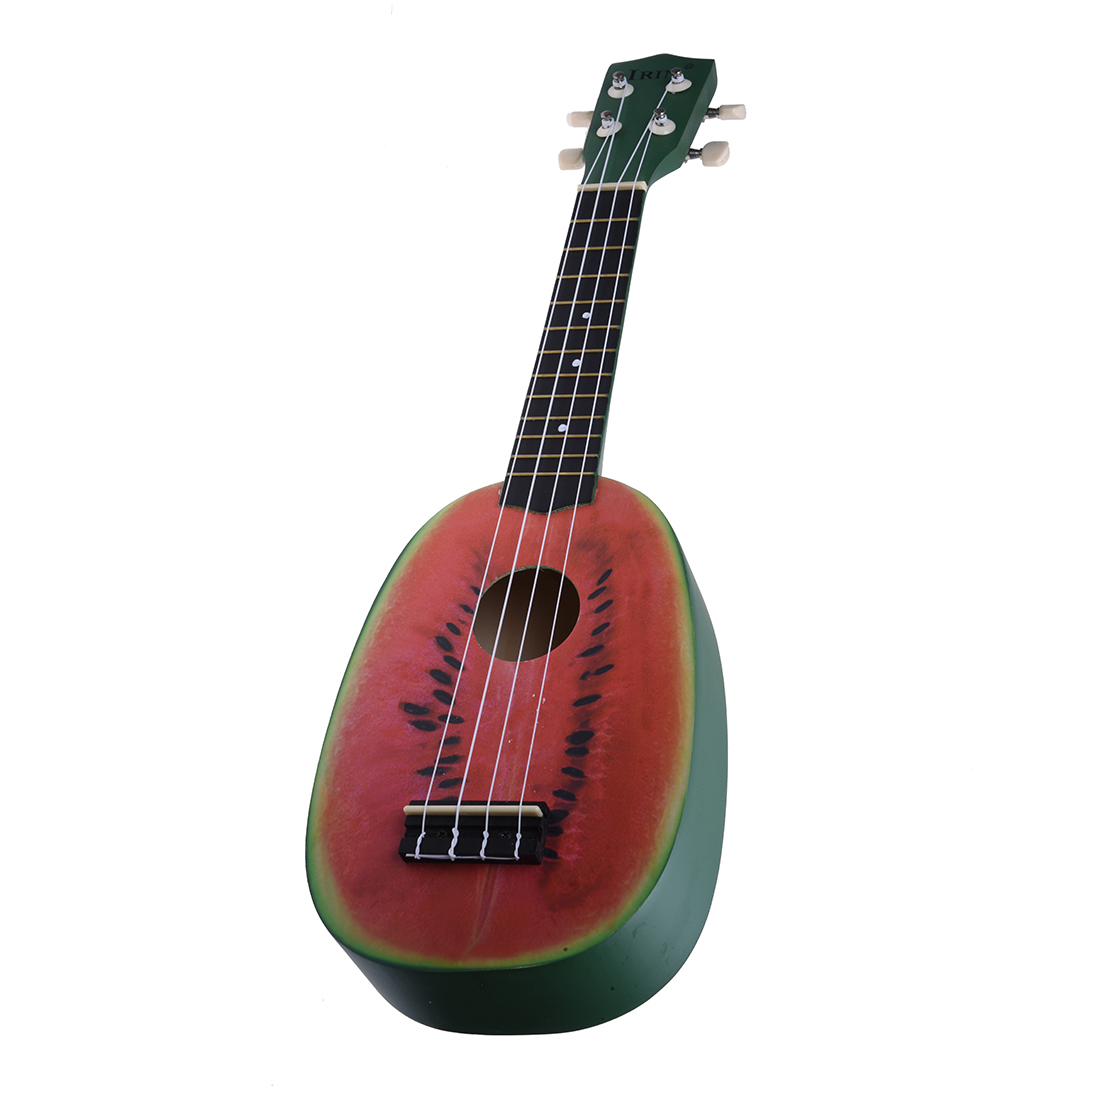 IRIN 21 Ukelele 4 Strings Colorful Lovely Watermelon / Kiwi Basswood Stringed Musical Instrument 4 String Hawaii Guitar